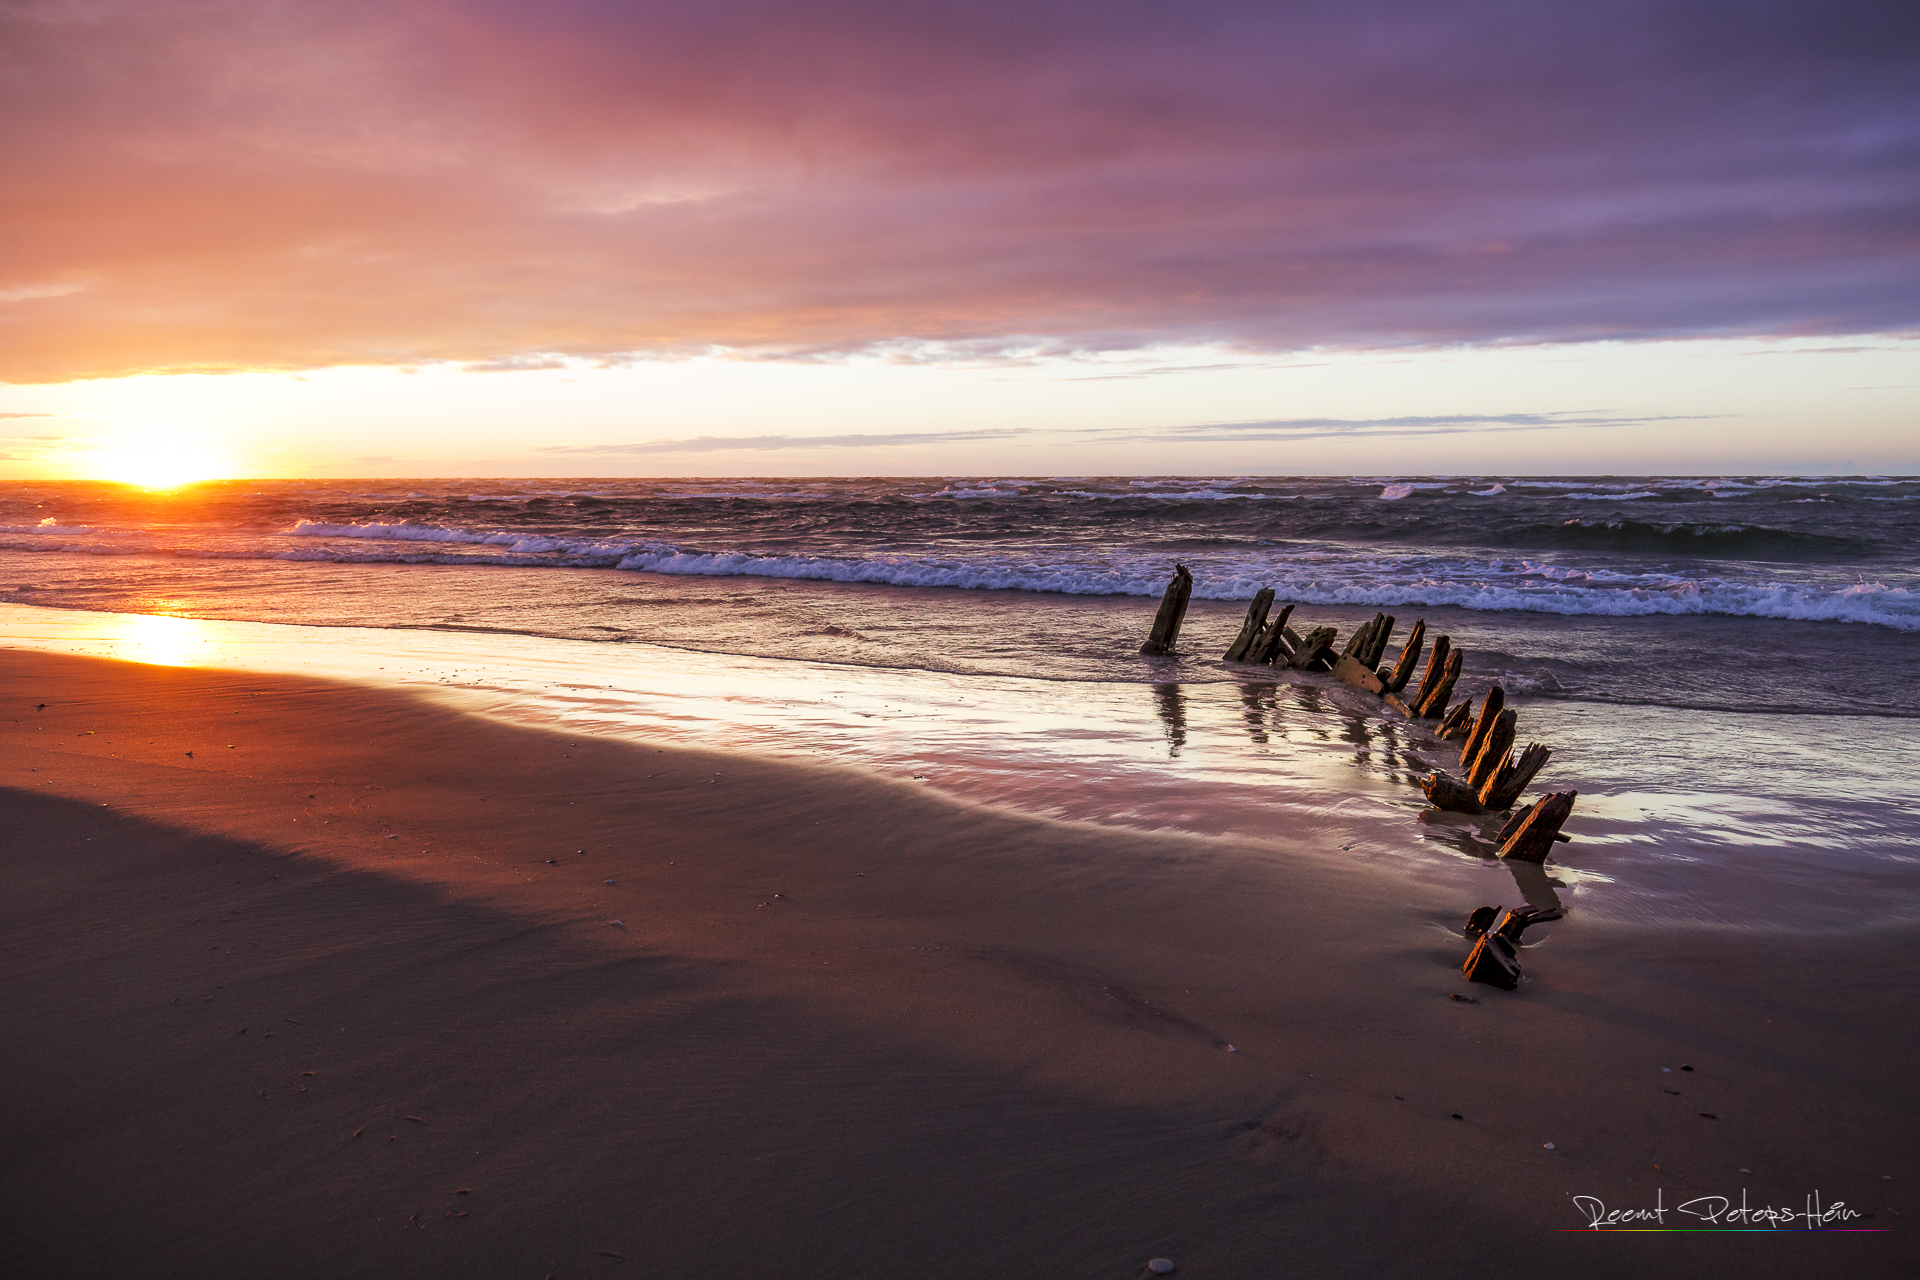 Beach of Hirtshals with a little shipwreck, Denmark